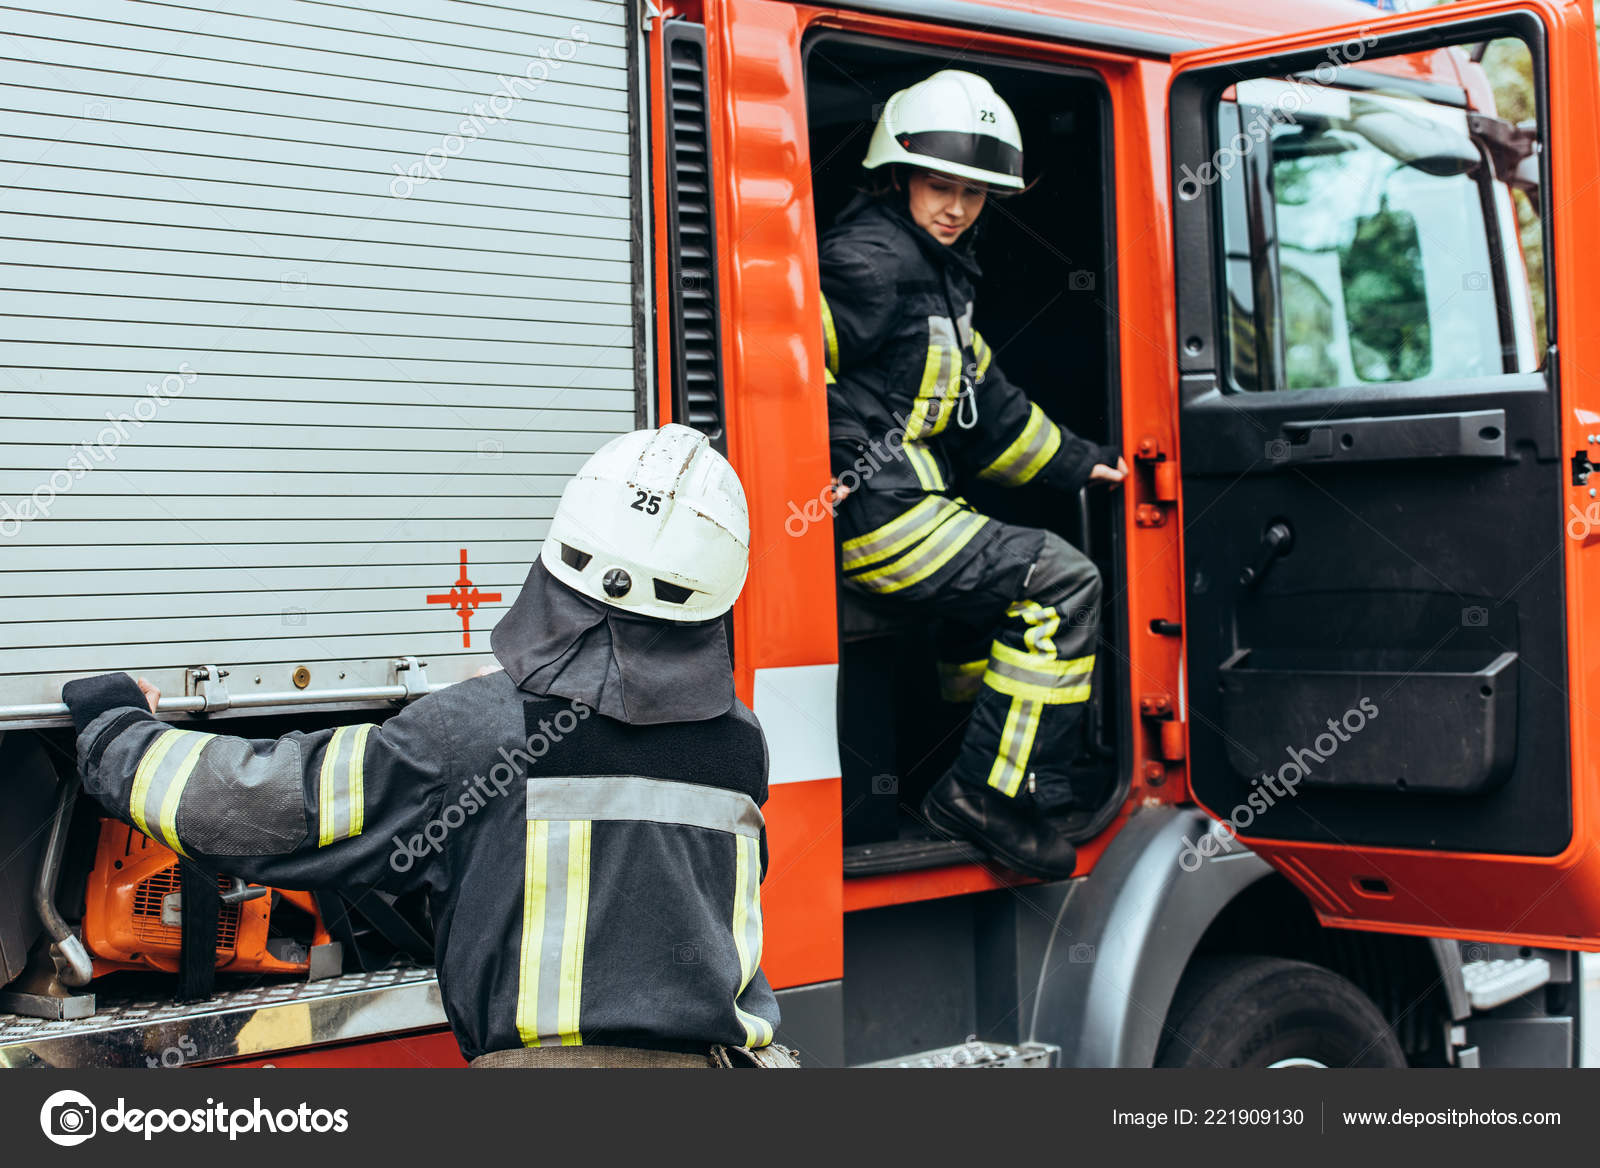 depositphotos 221909130 stock photo partial view firefighters helmets fire